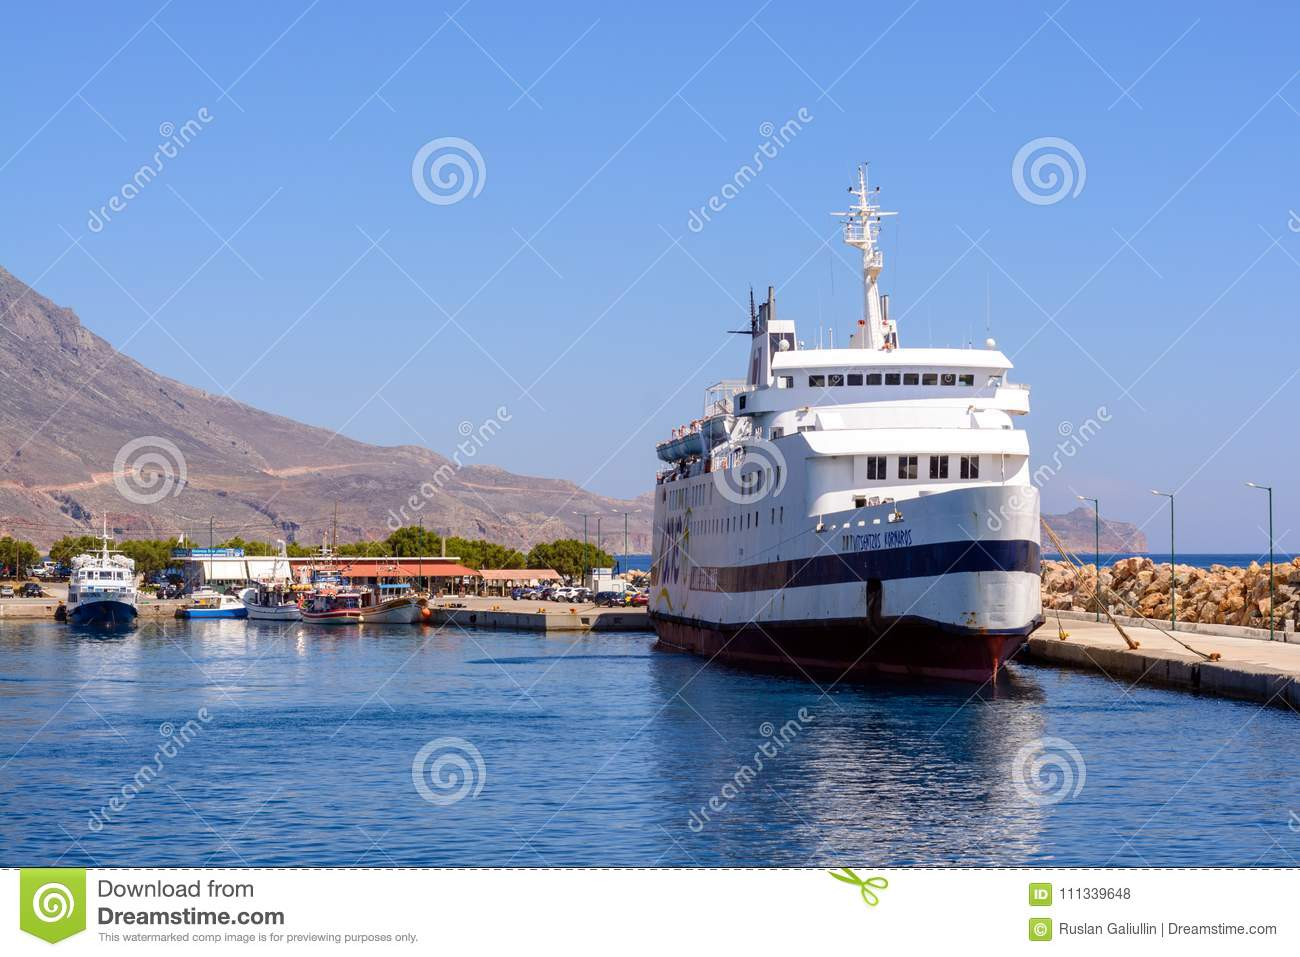 13 June, 2017, Greece. Cruise ship stands on the dock before sending it to the Bay of Balos, Greece.